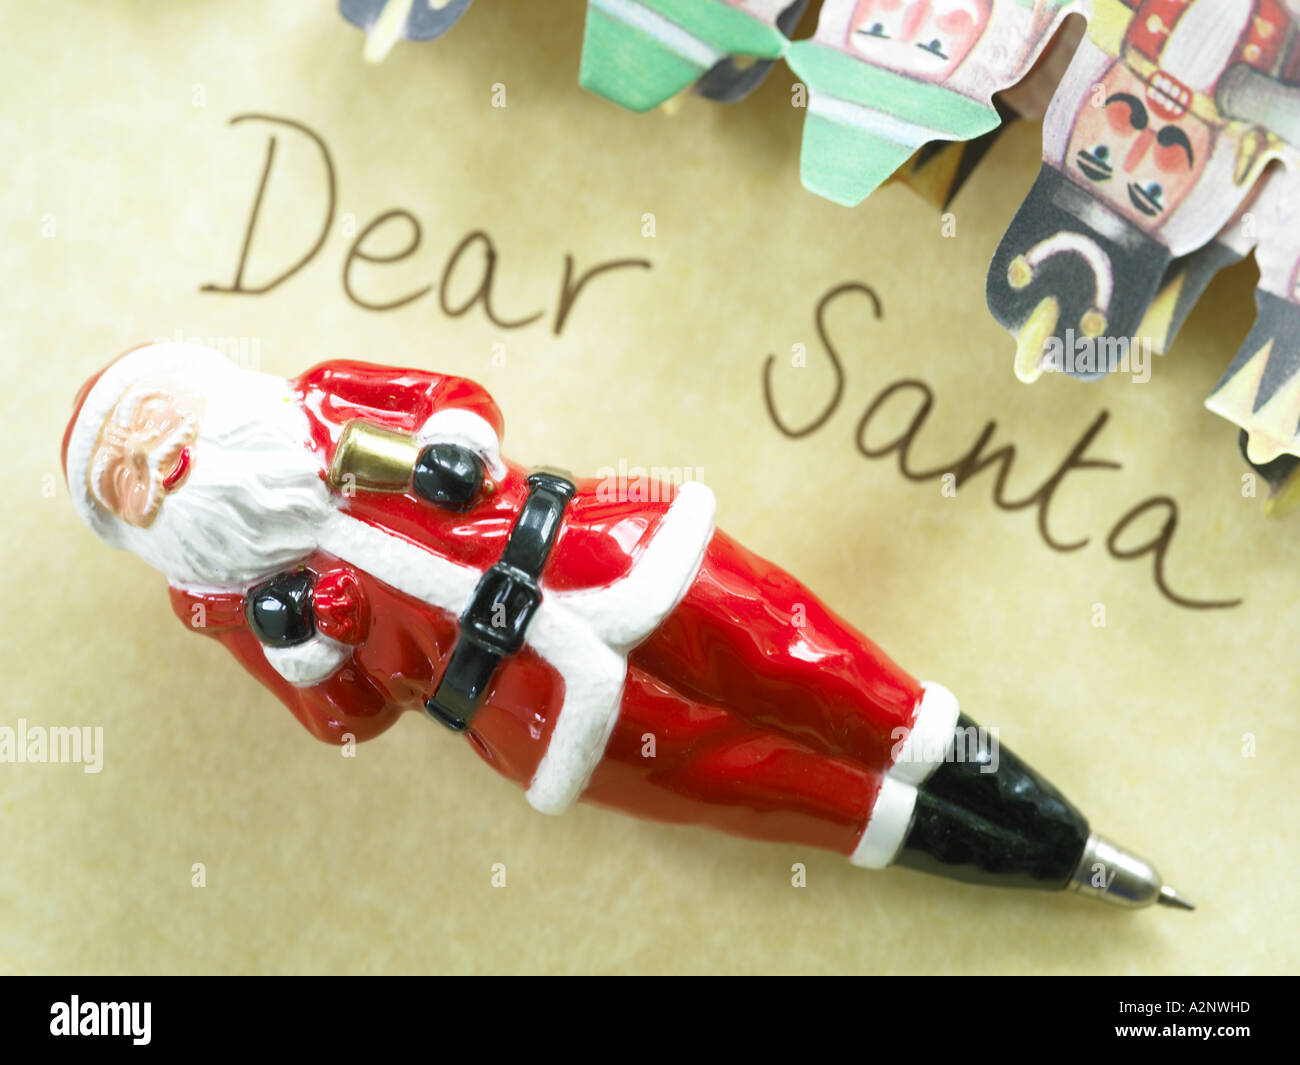 dear santa note written on paper with father xmas pen with paper christmas decorations - Stock Image